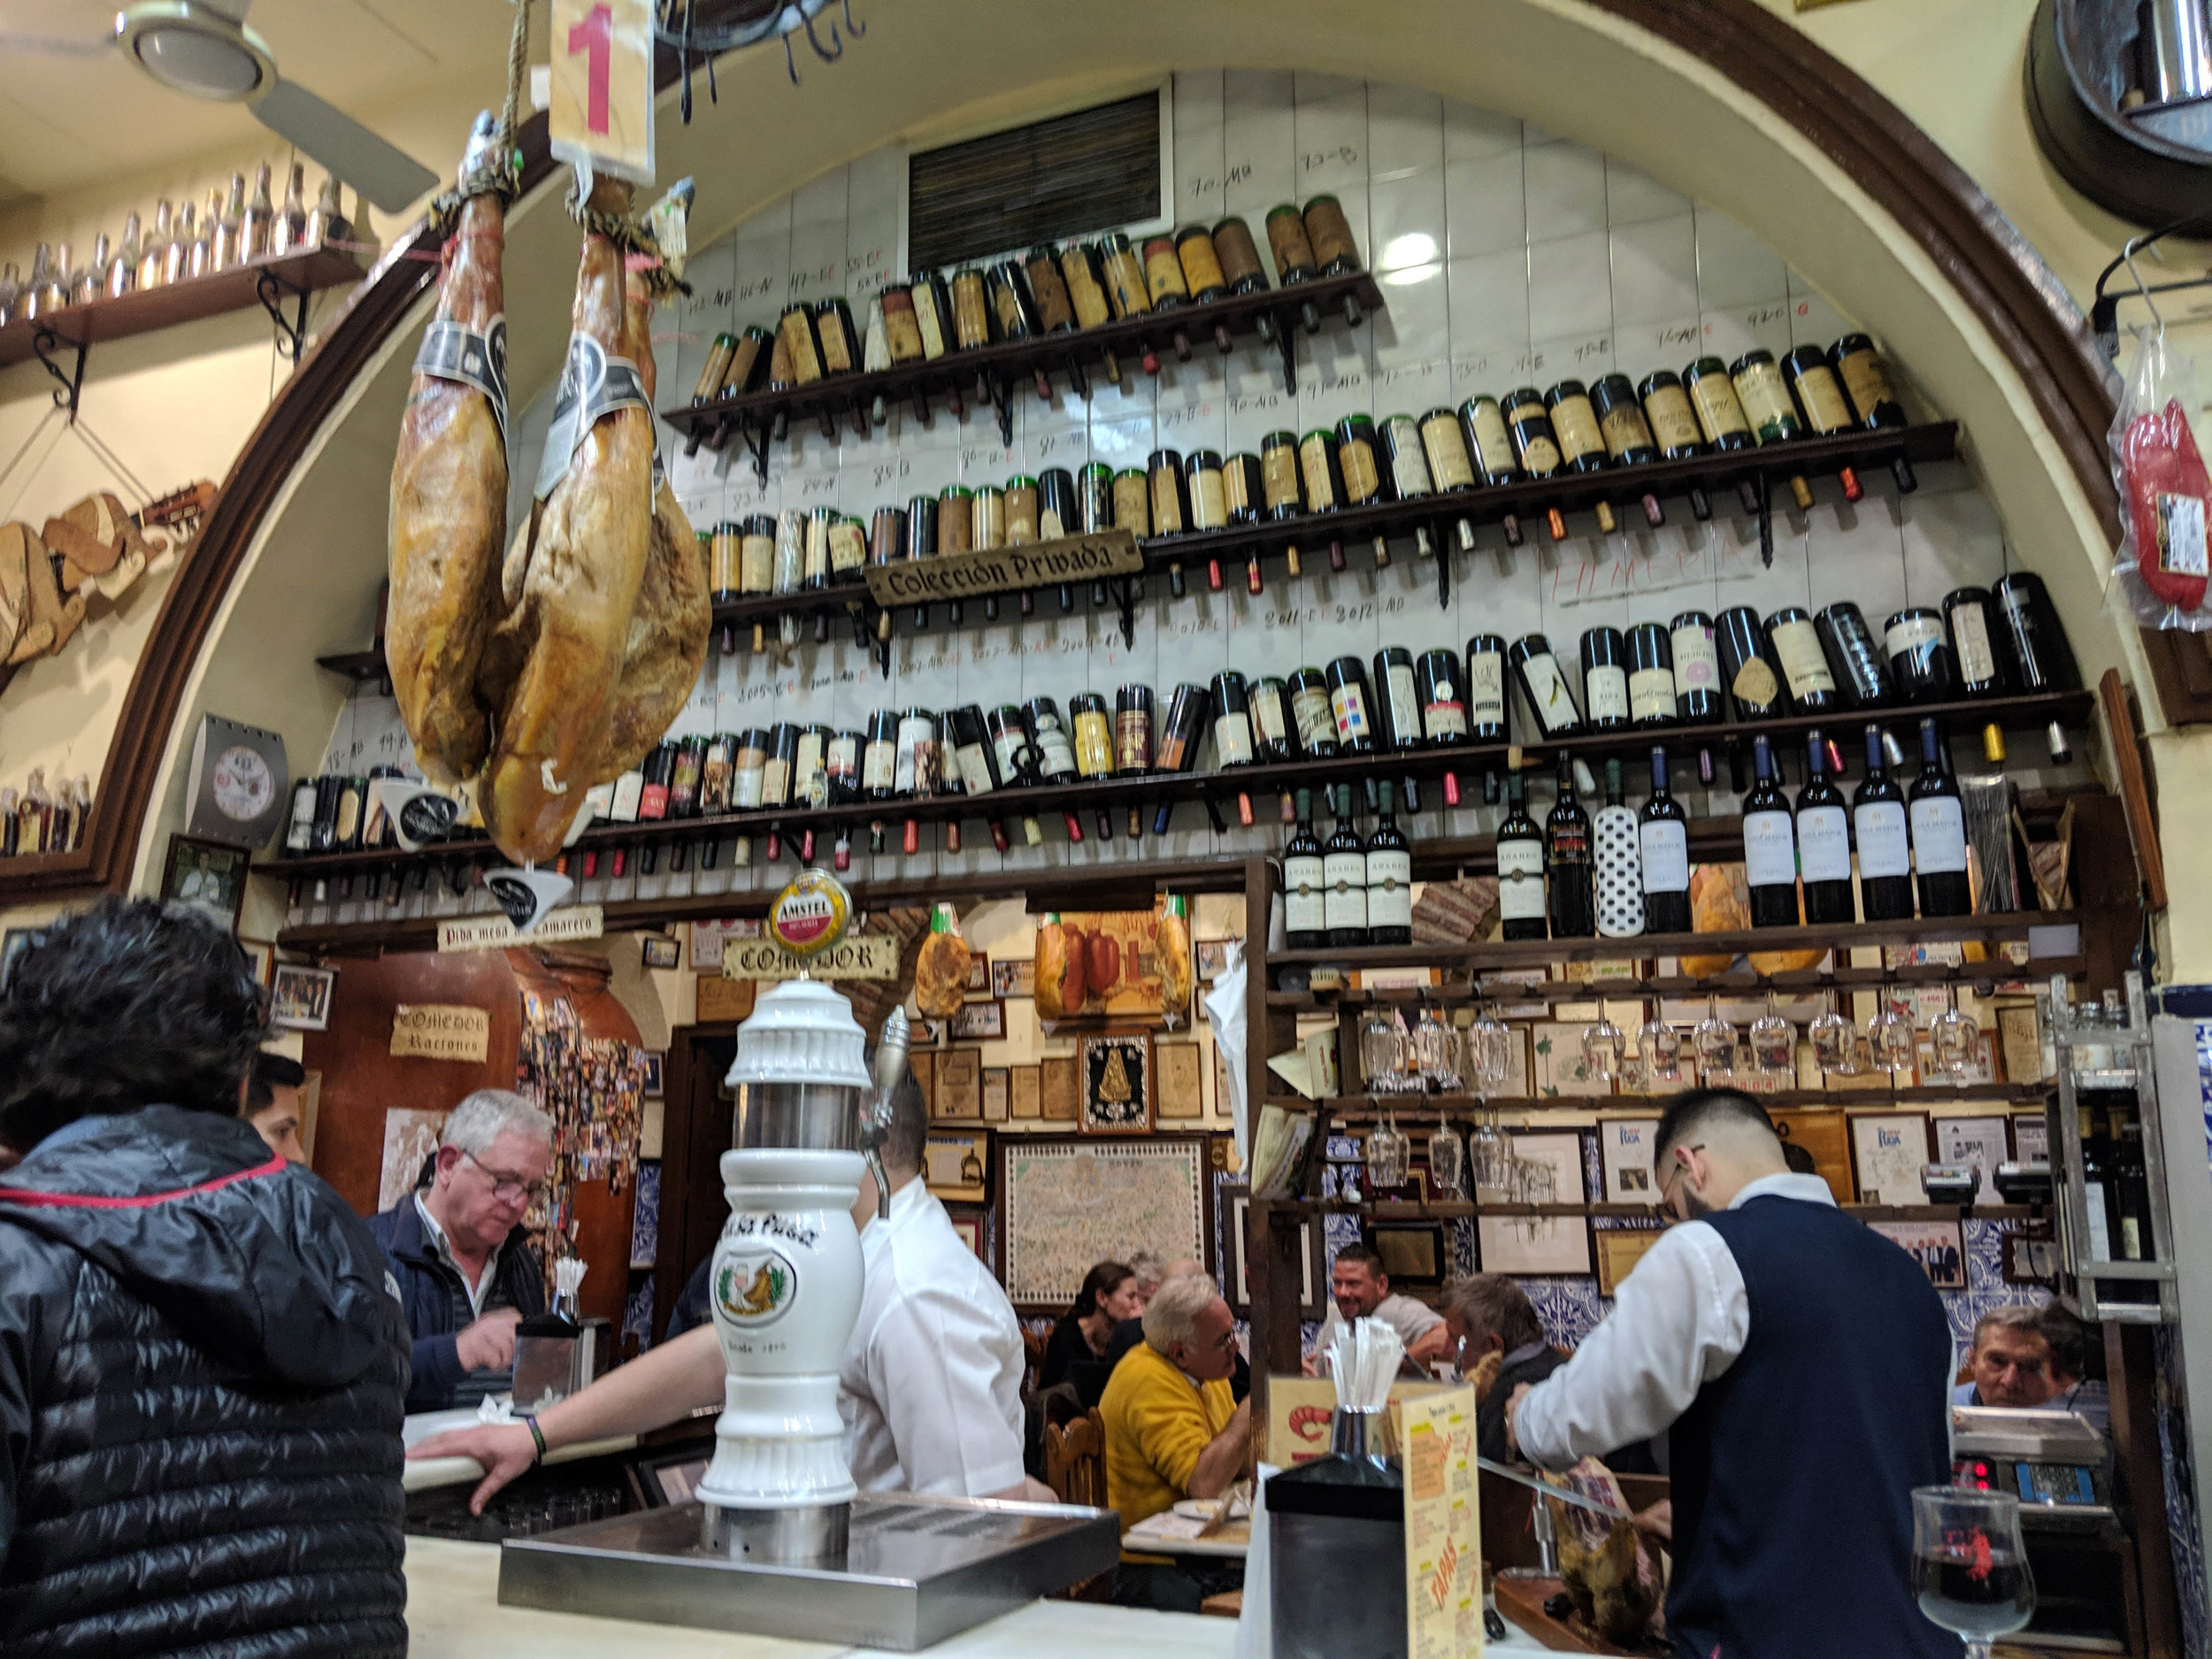 Casa Puga, one of the amazing traditional tapas bars